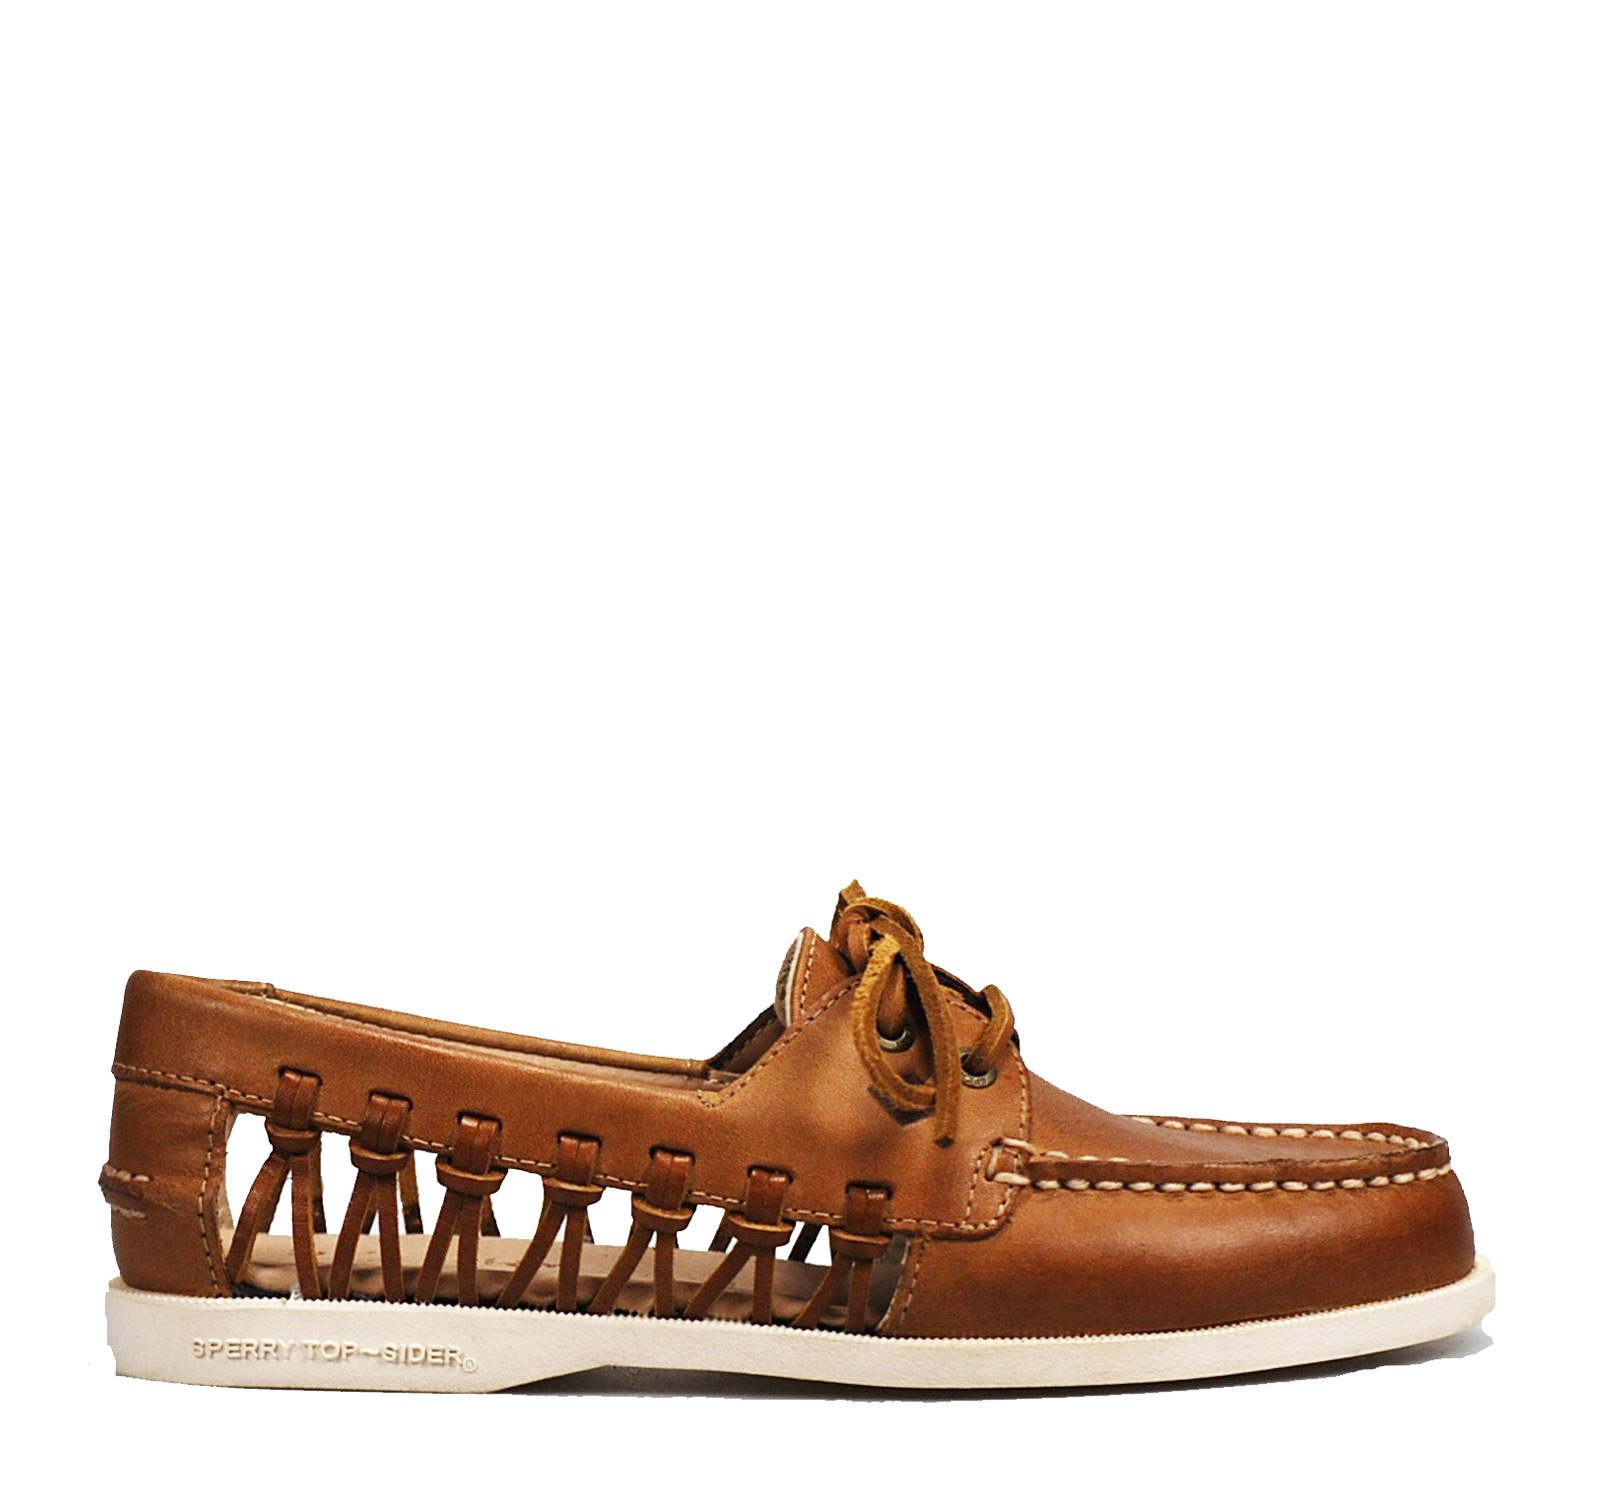 Sperry Top-Sider A/O Haven Leather Women's - Sahara – On The EDGE